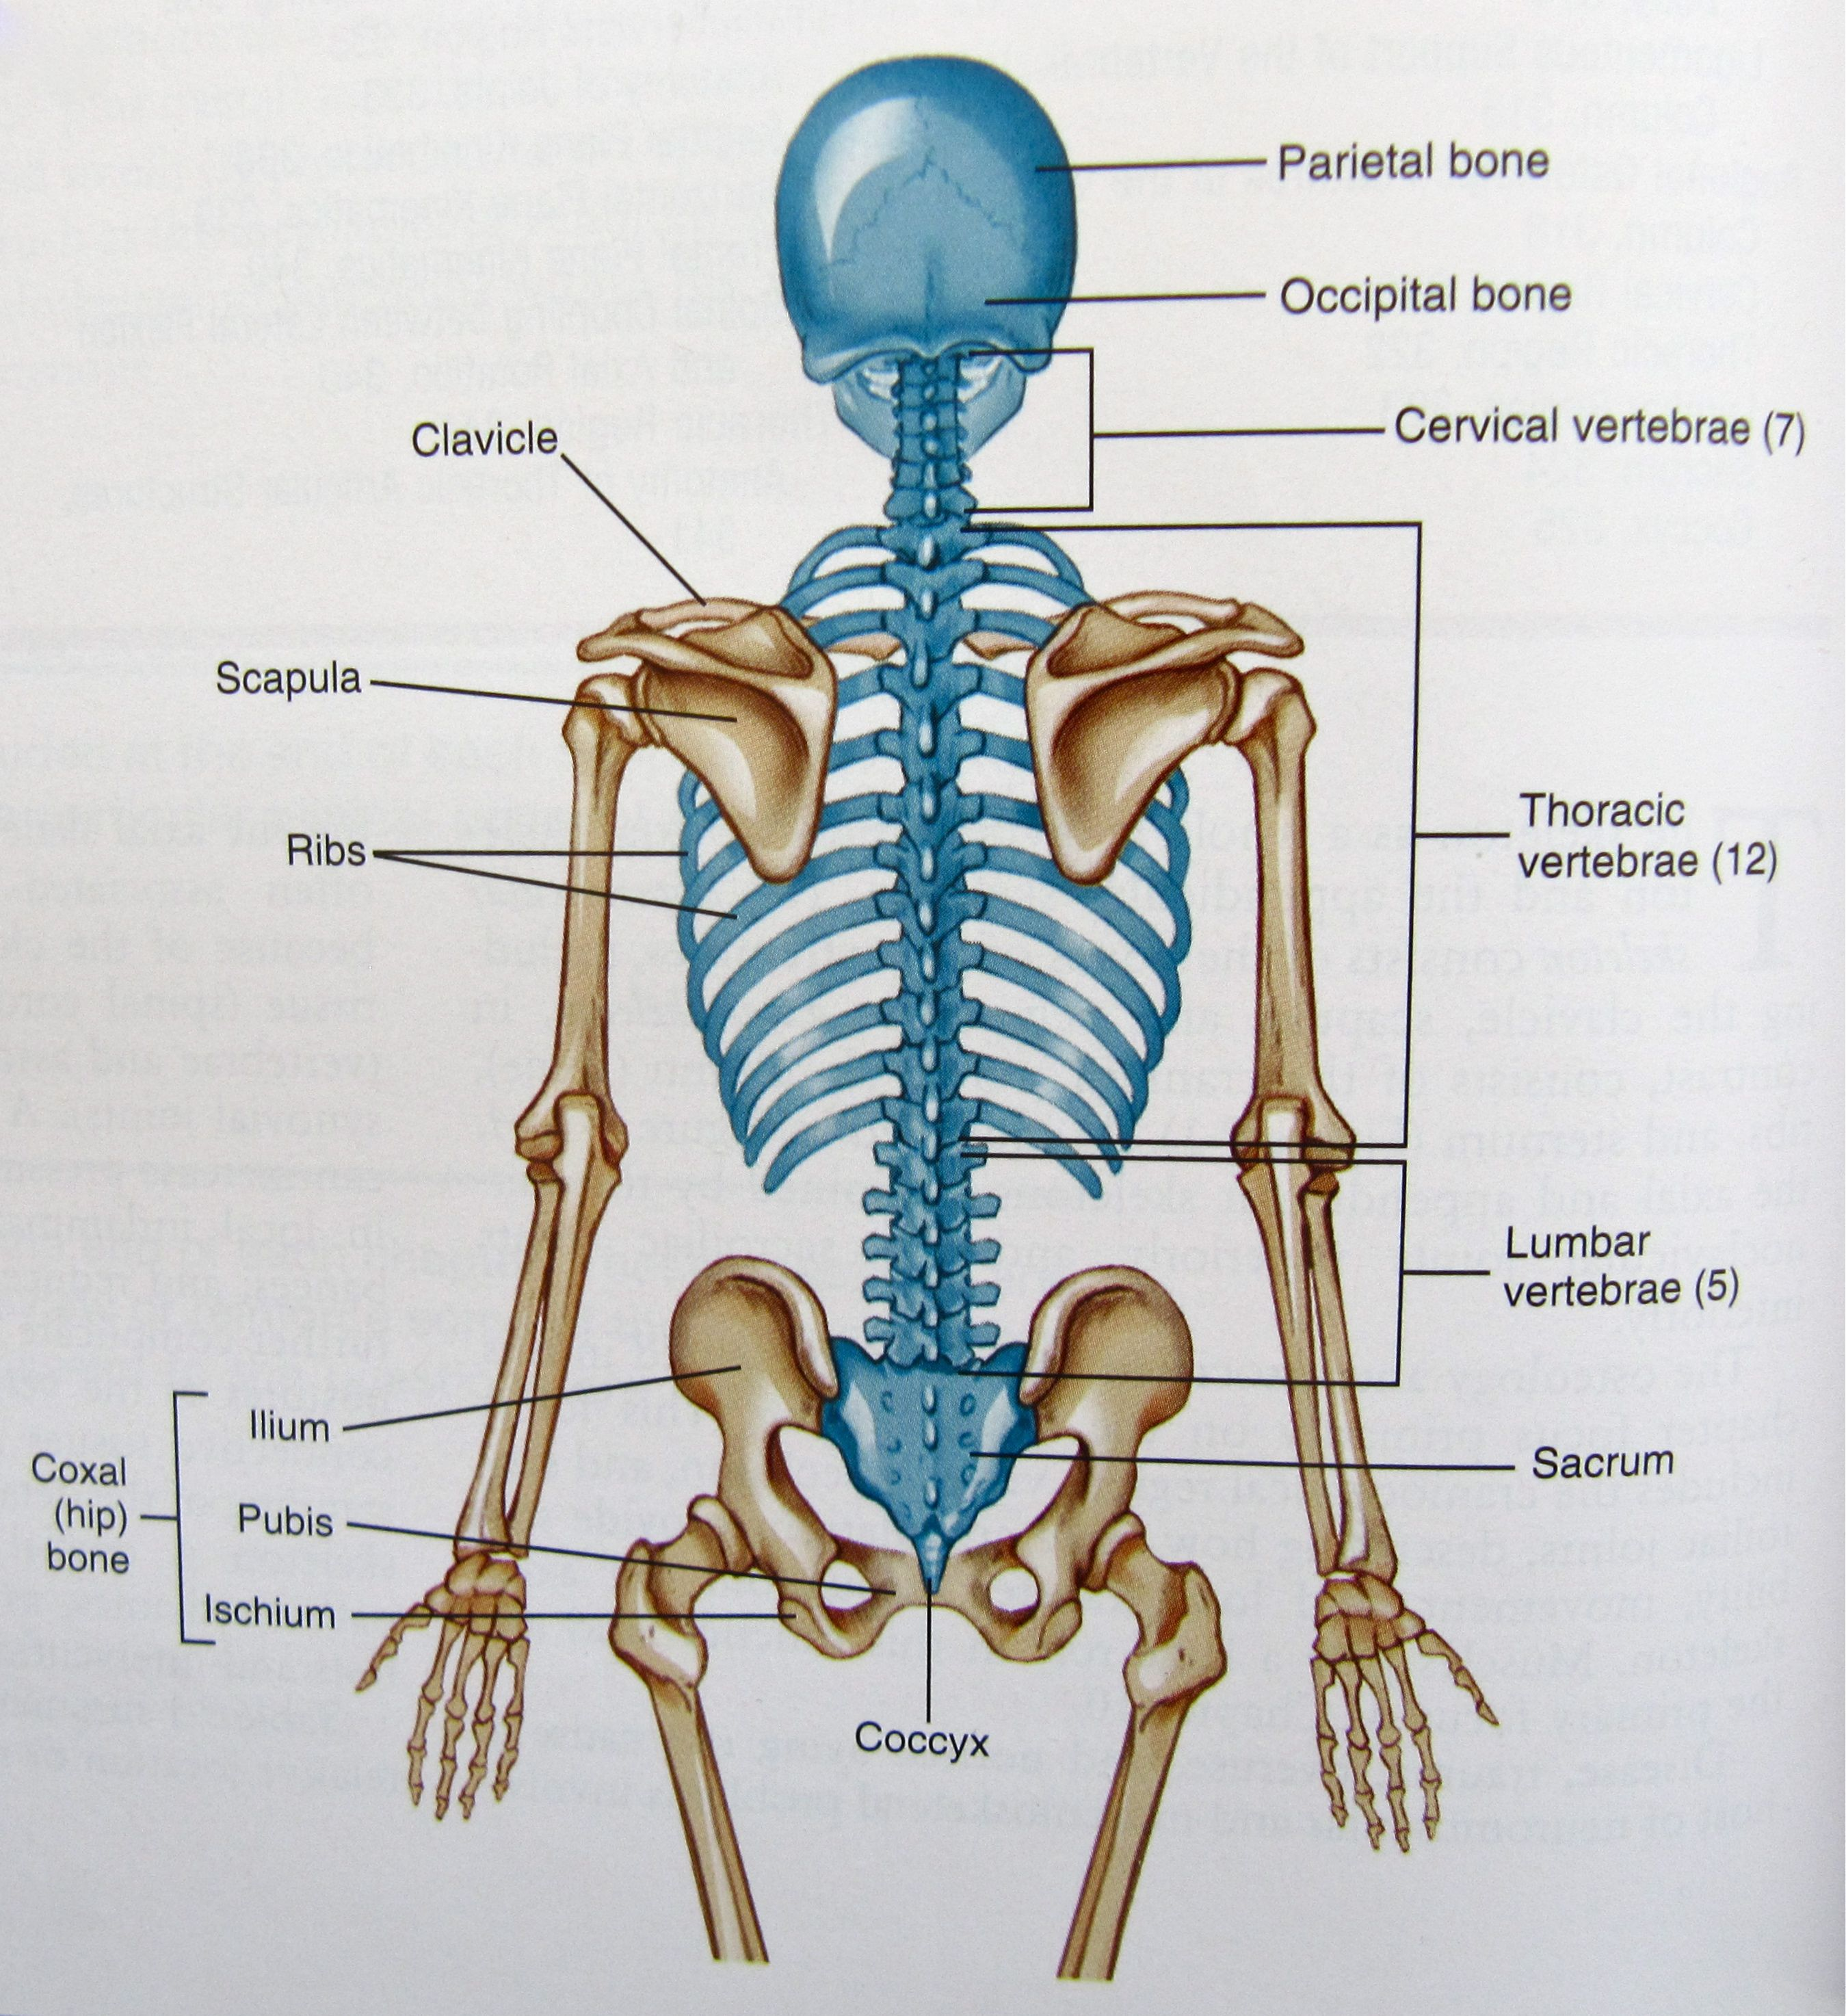 hight resolution of the axial skeleton is the portion of the human skeleton that consists of the bones of